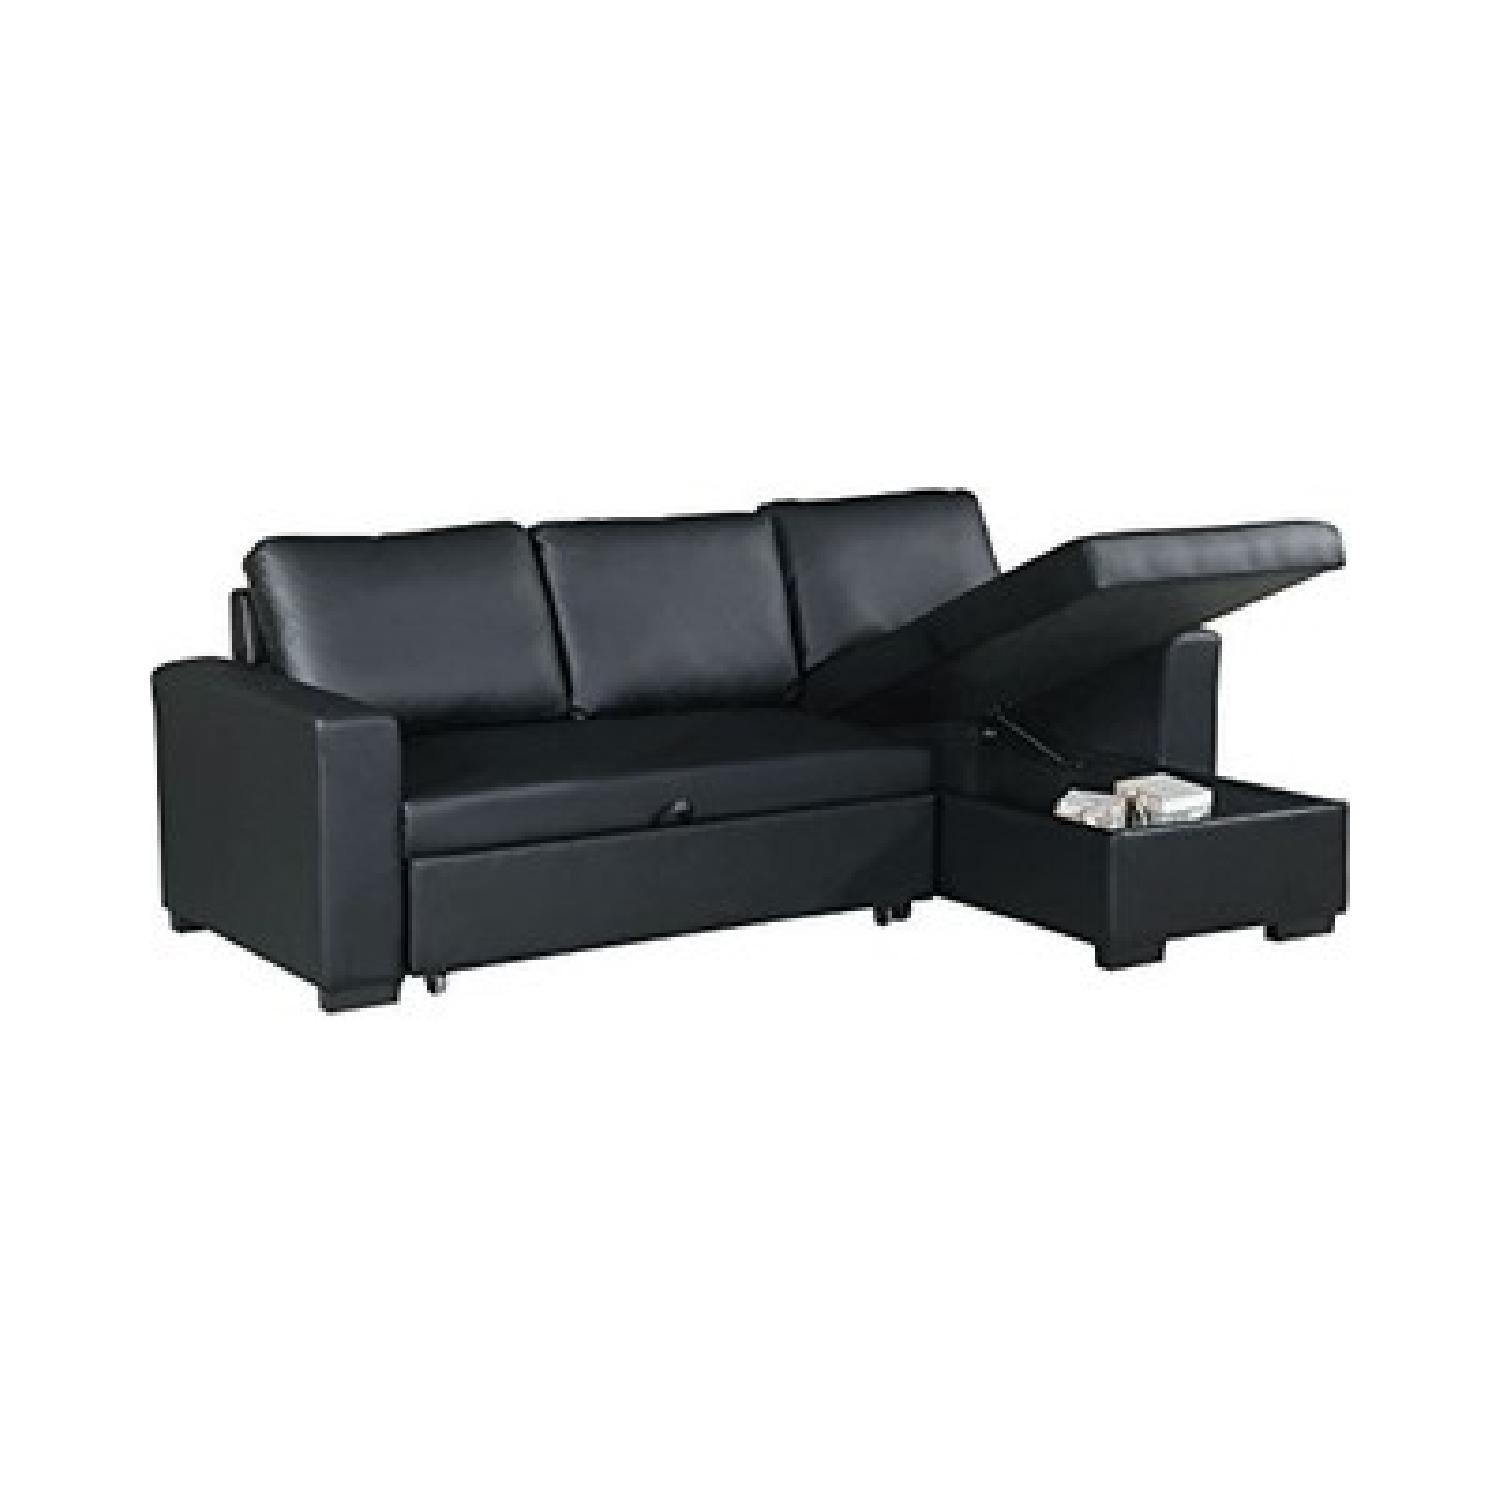 Black Bonded Leather Pull-Out Bed Sectional w/ Storage - image-0